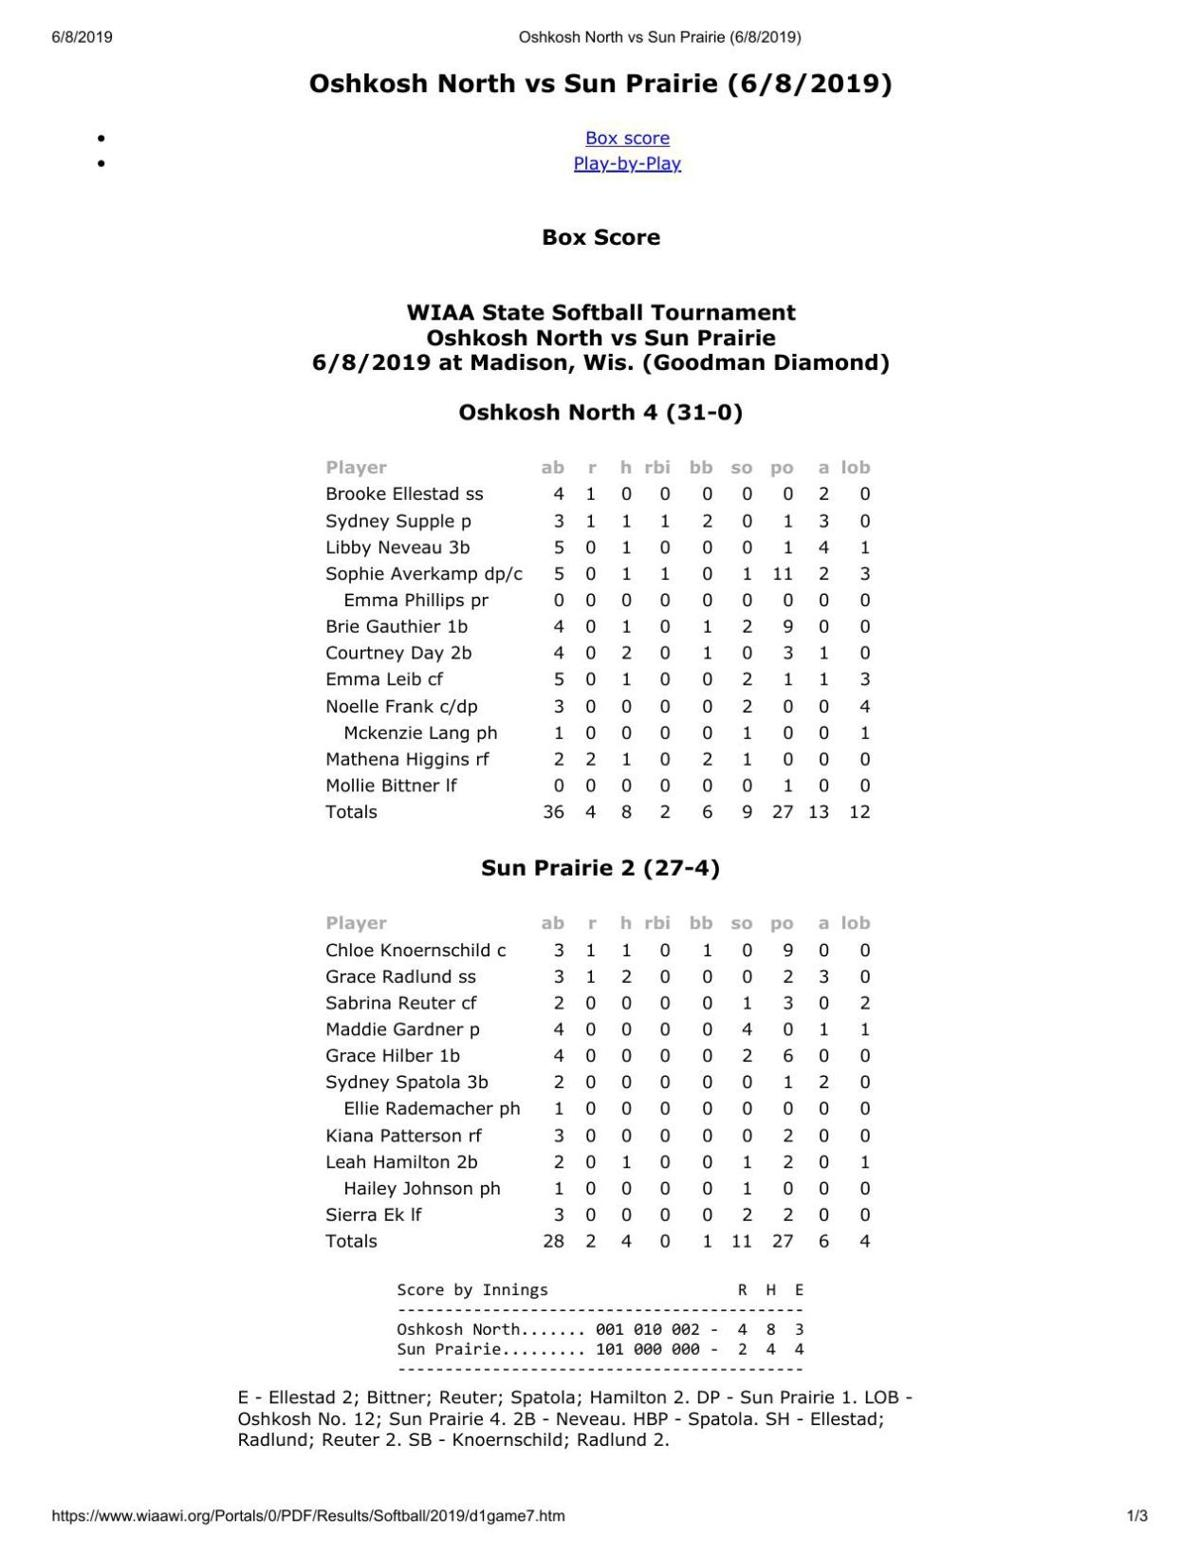 Official statistics, play-by-play: Oshkosh North 4, Sun Prairie 2